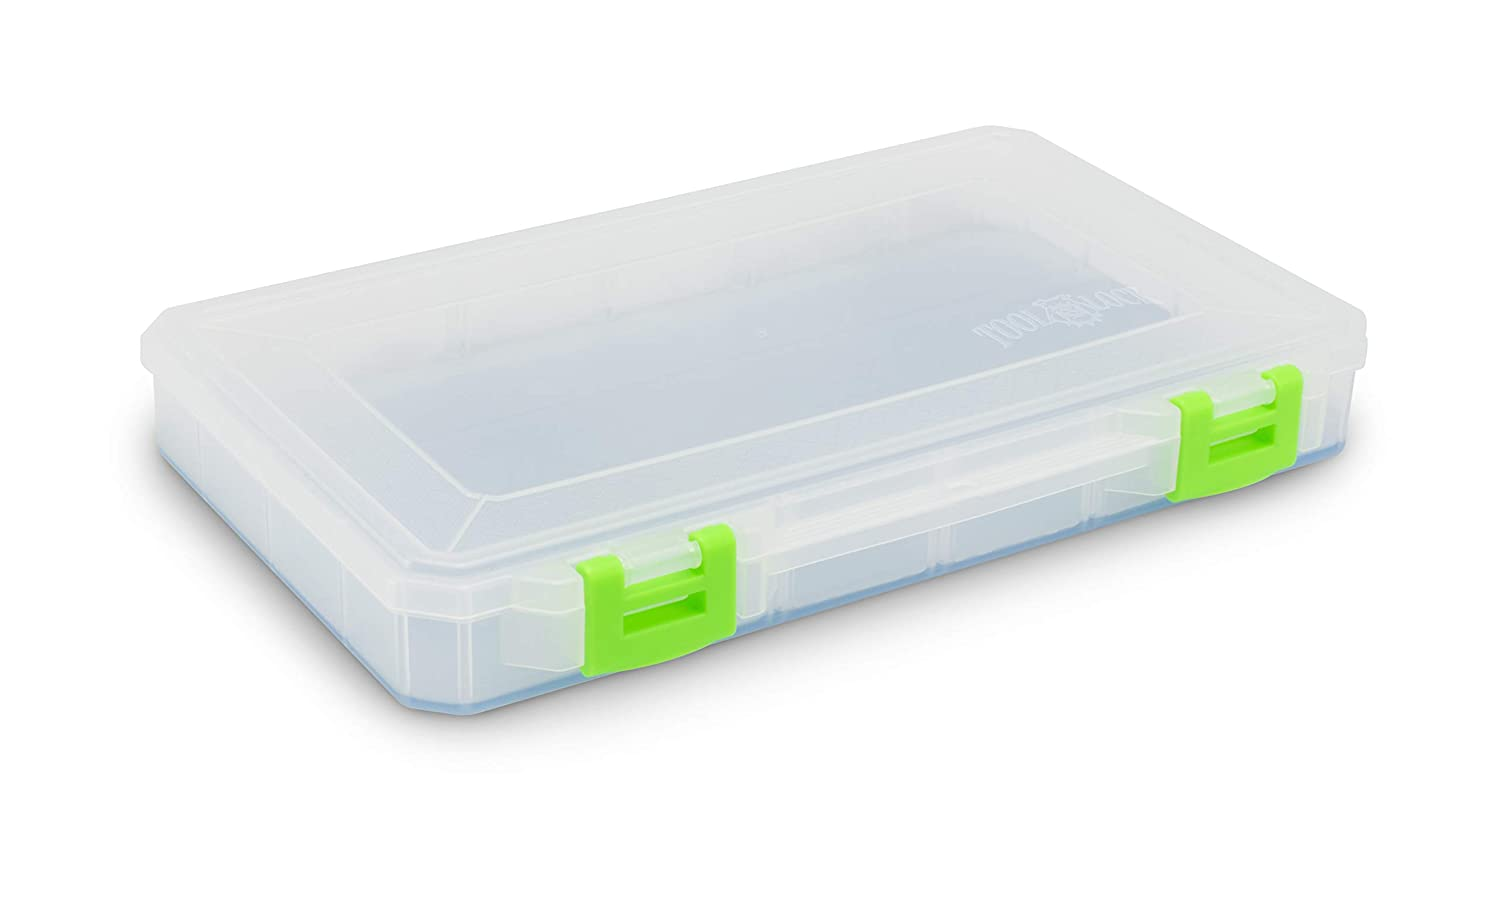 Large w//ElasTak Technology Liner 9H x 15W x 1-7//8D Large w//ElasTak Technology Liner 9H x 15W x 1-7//8D Tak Logic Tool Lock TL1-1 1 Compartment Tool Box Tray